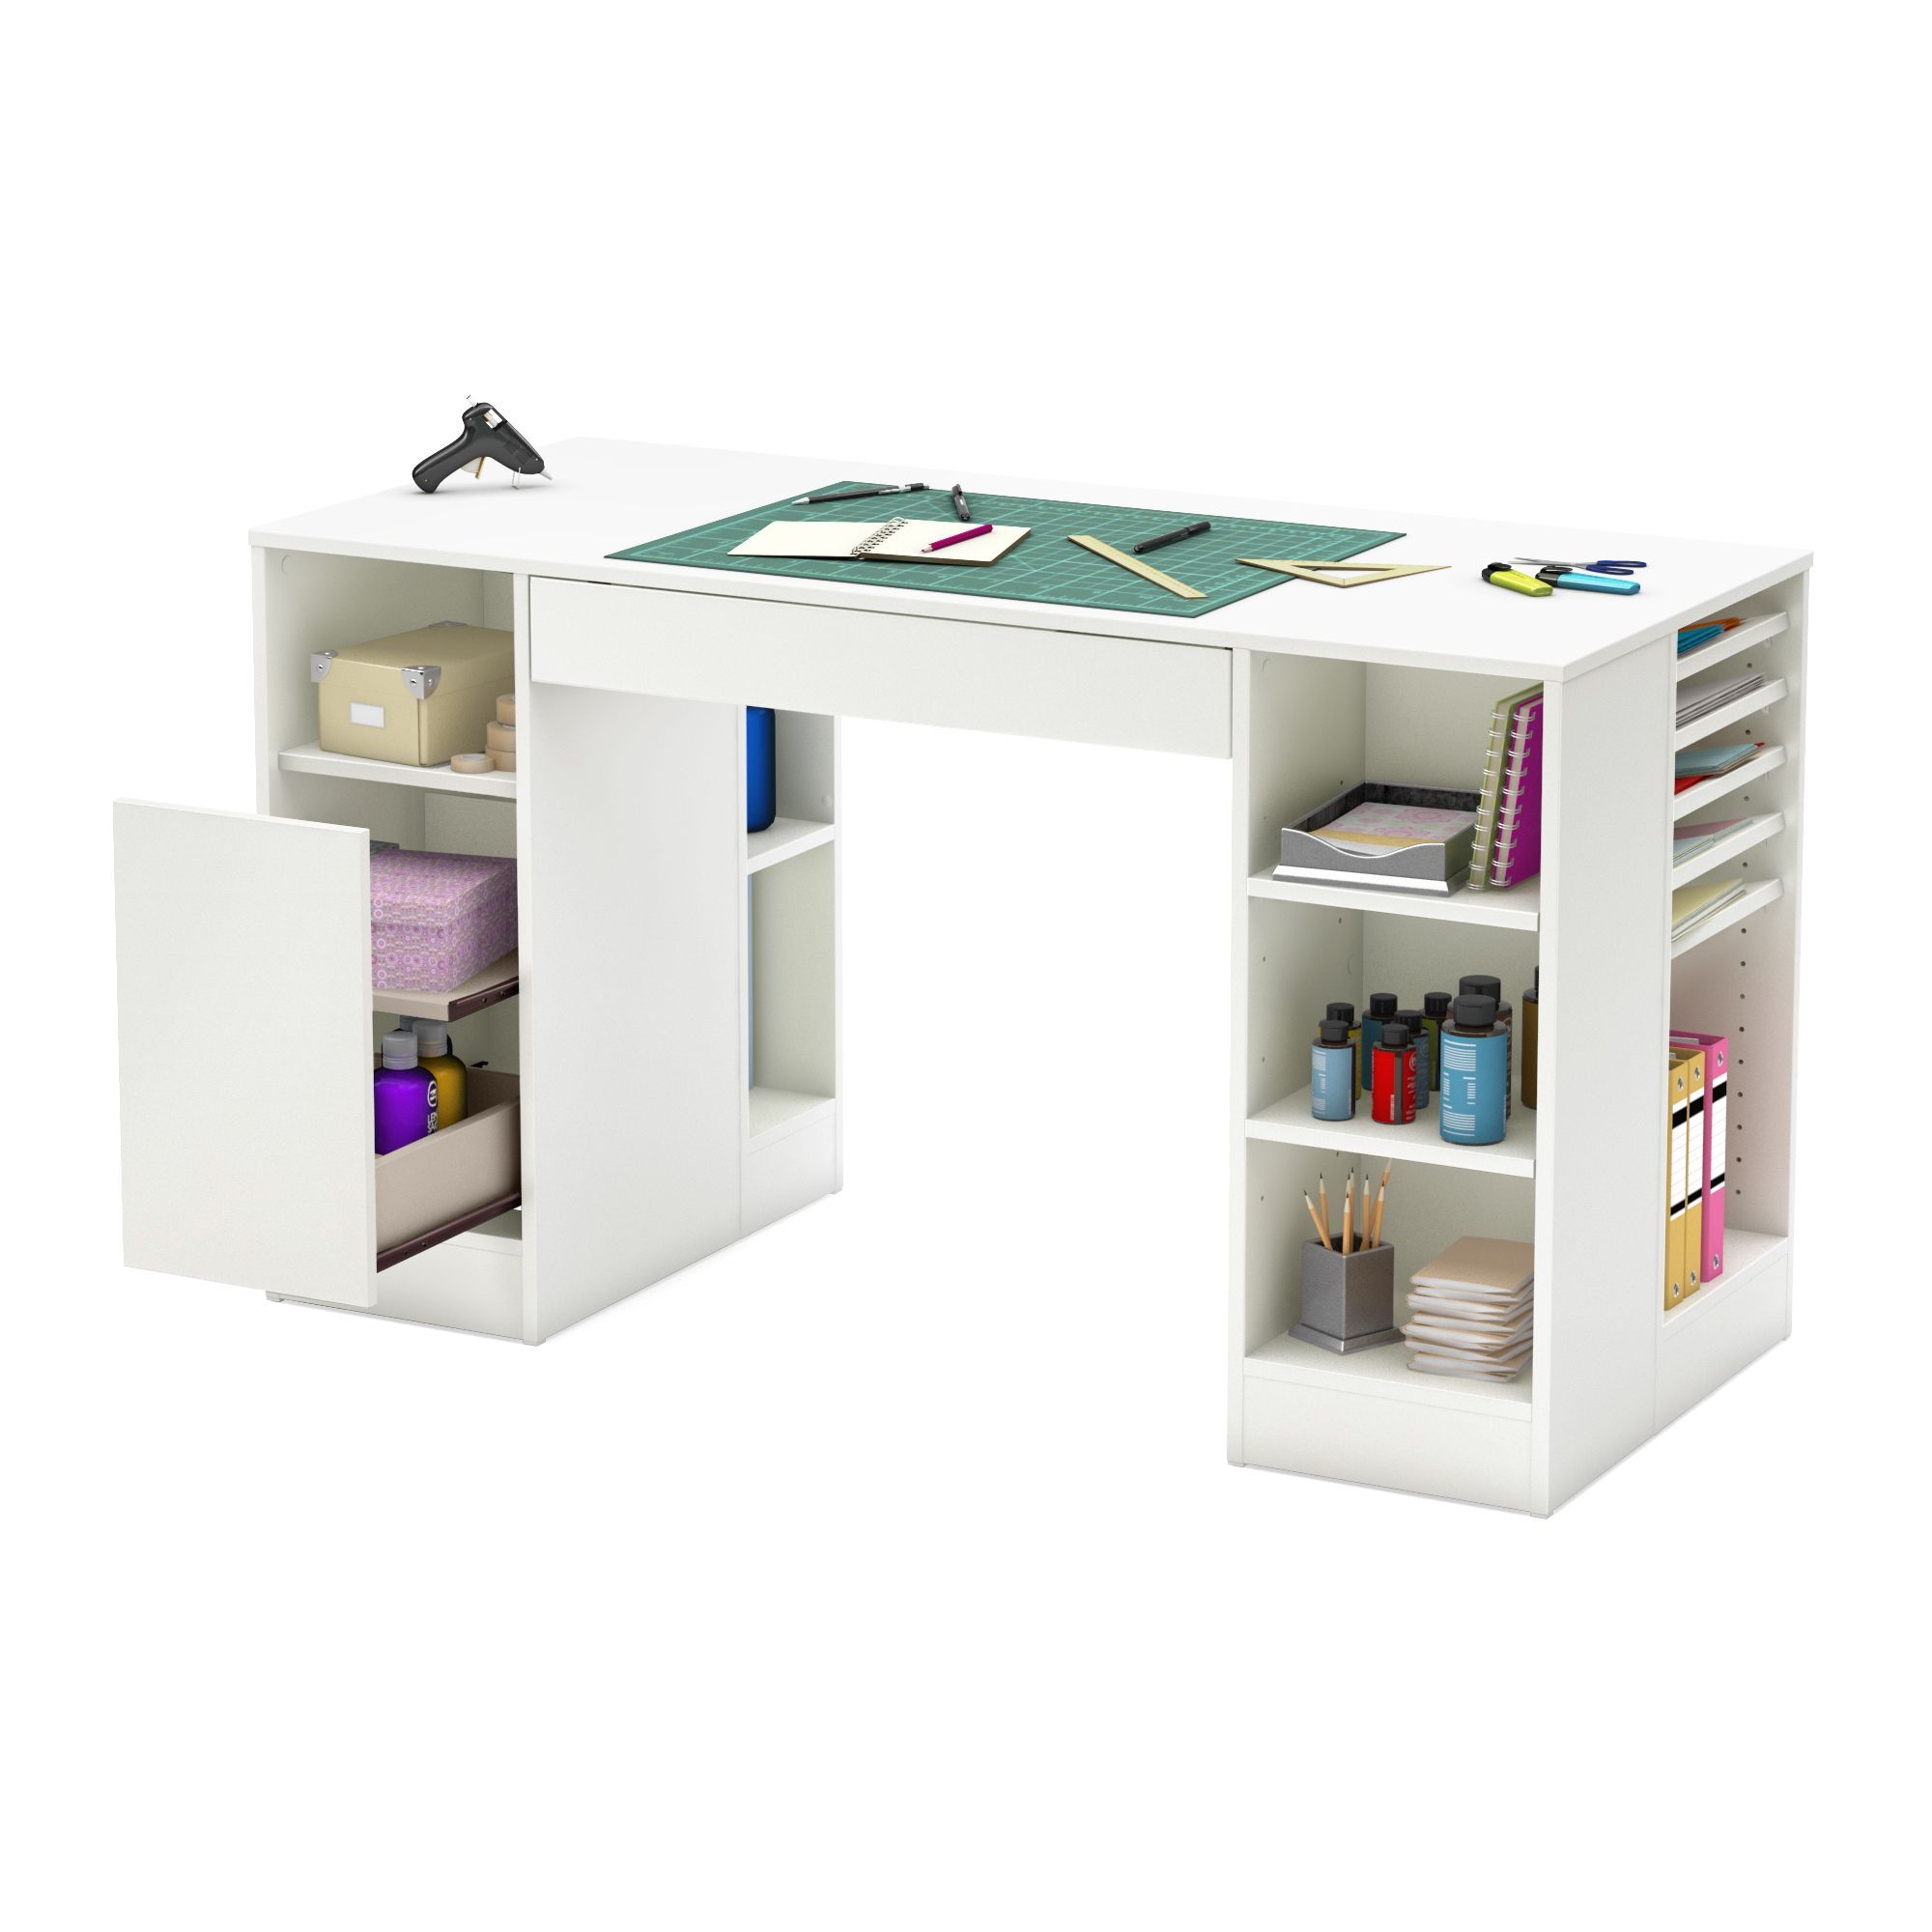 Awesome South Shore Crea Collection Craft Table White #2 - South Shore Crea Collection Pure White Craft Table - Overstock™ Shopping -  Great Deals On South Shore Furniture Desks